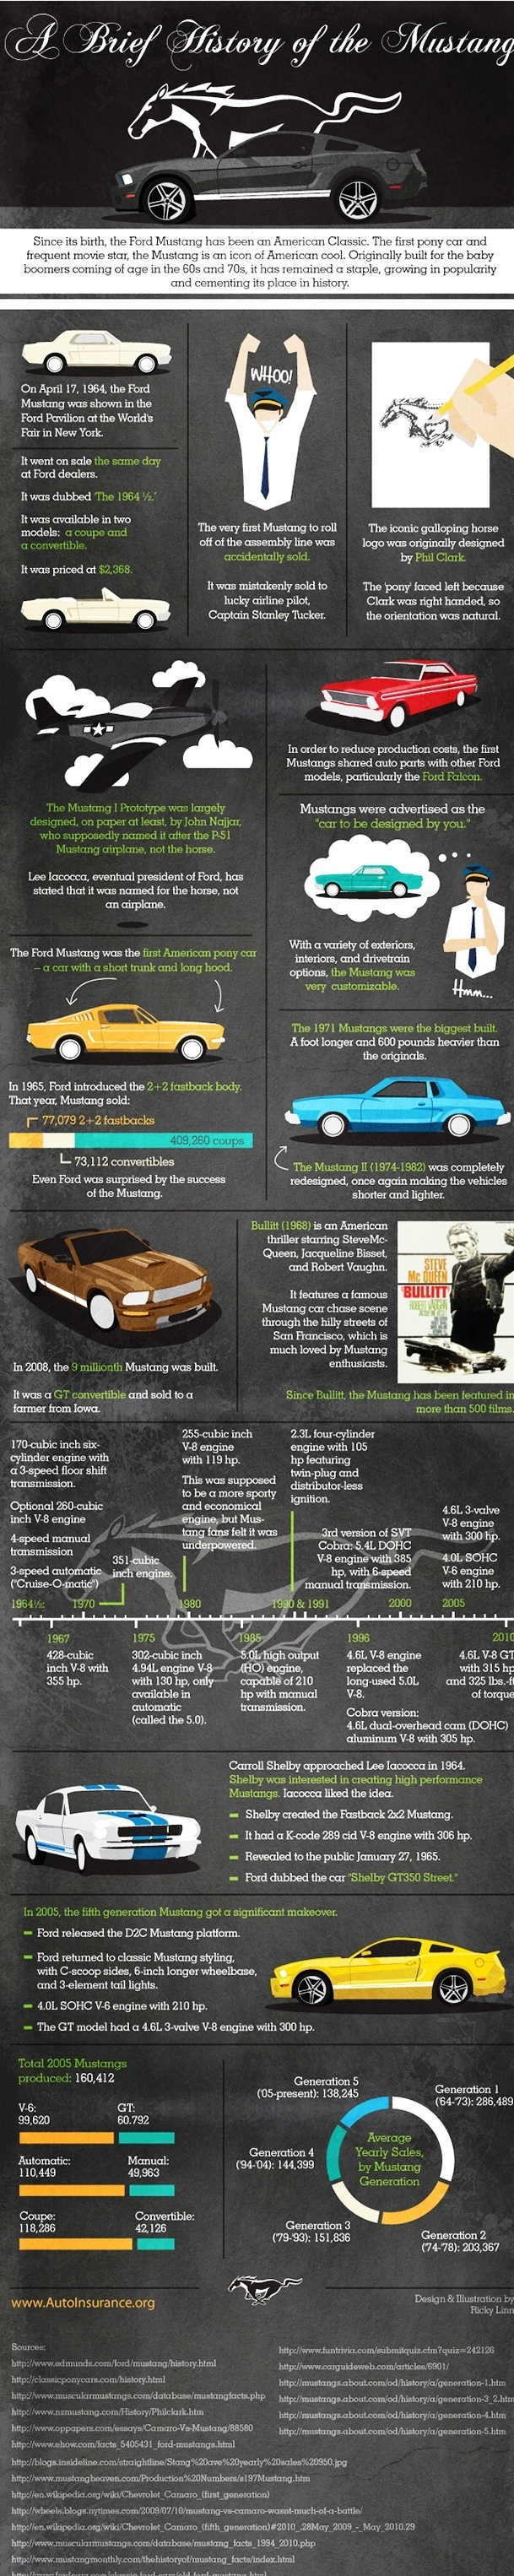 infographic the history of the ford mustang 1964 2010. Black Bedroom Furniture Sets. Home Design Ideas